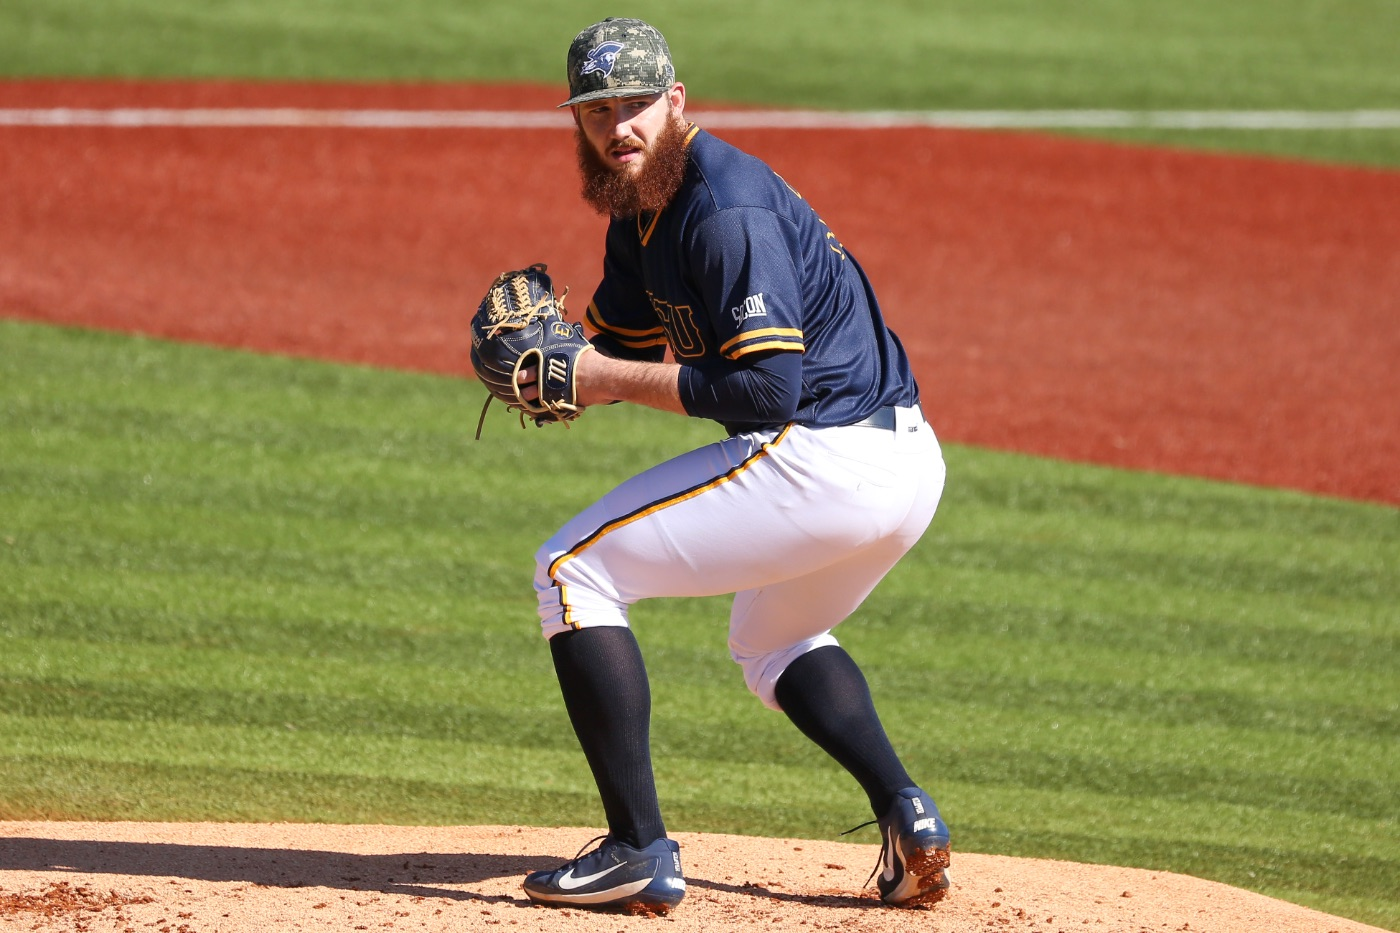 Bucs fall in pitching duel with Florida Gulf Coast